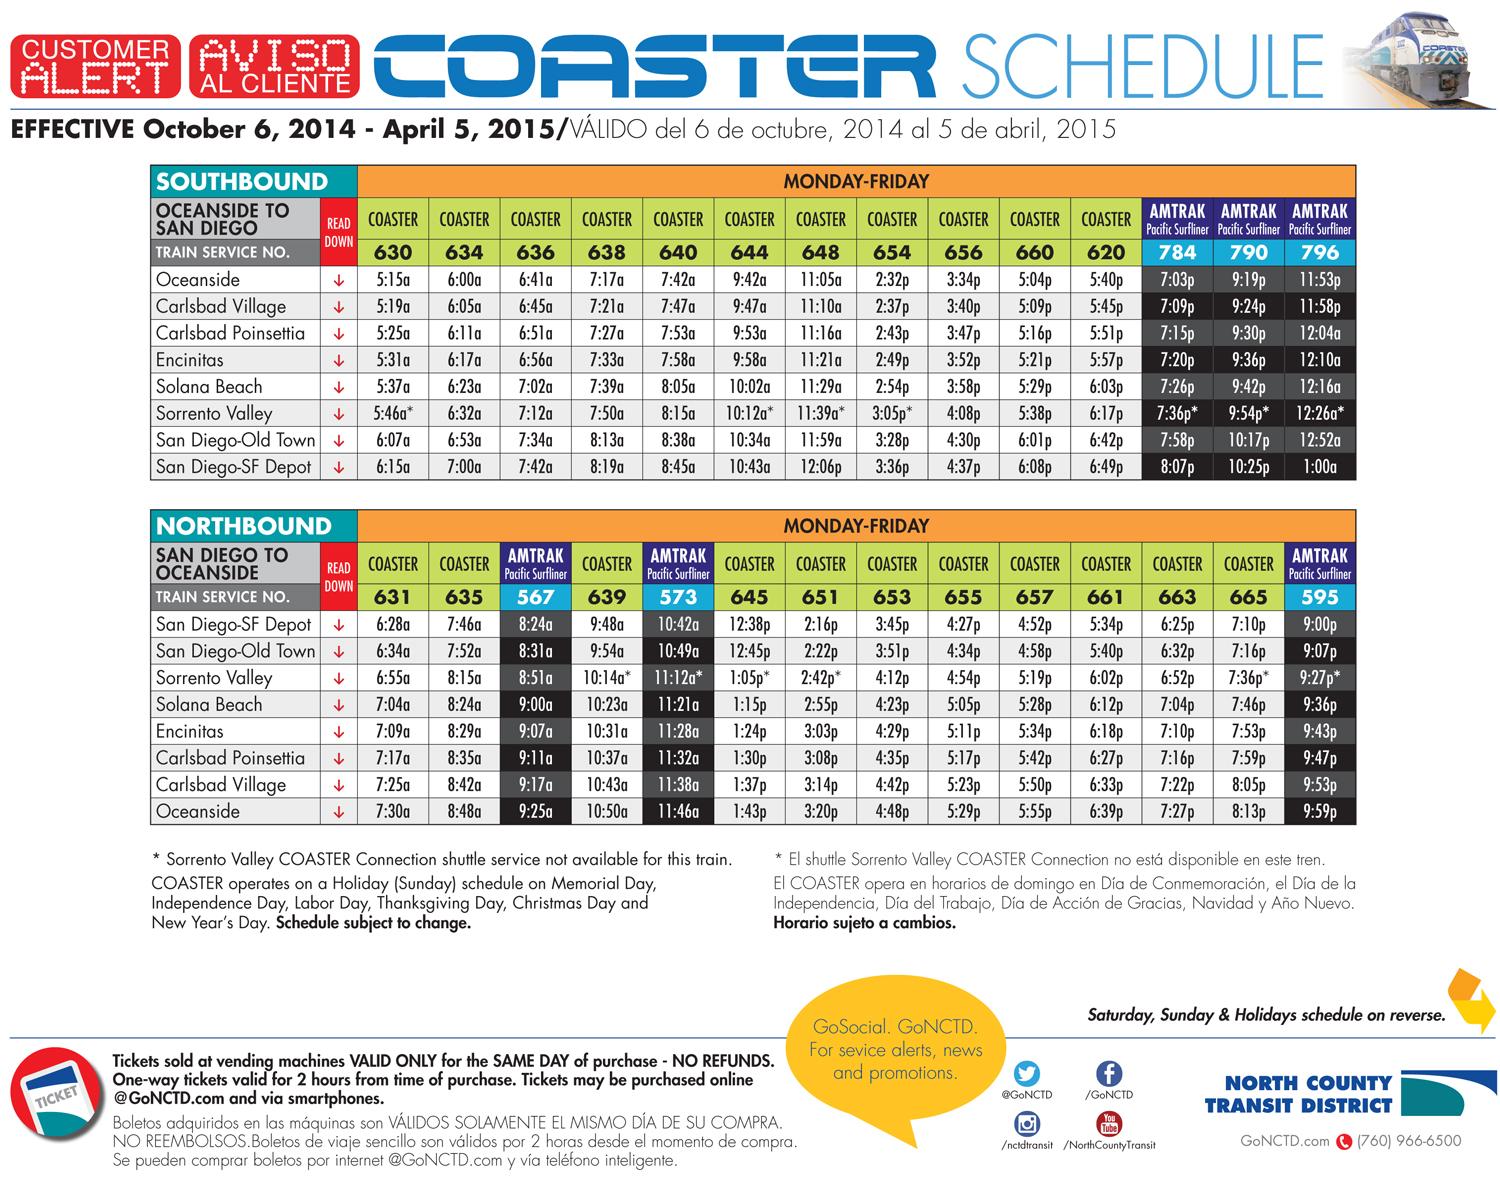 New Coaster Schedule Goes Into Effect October 6 2014